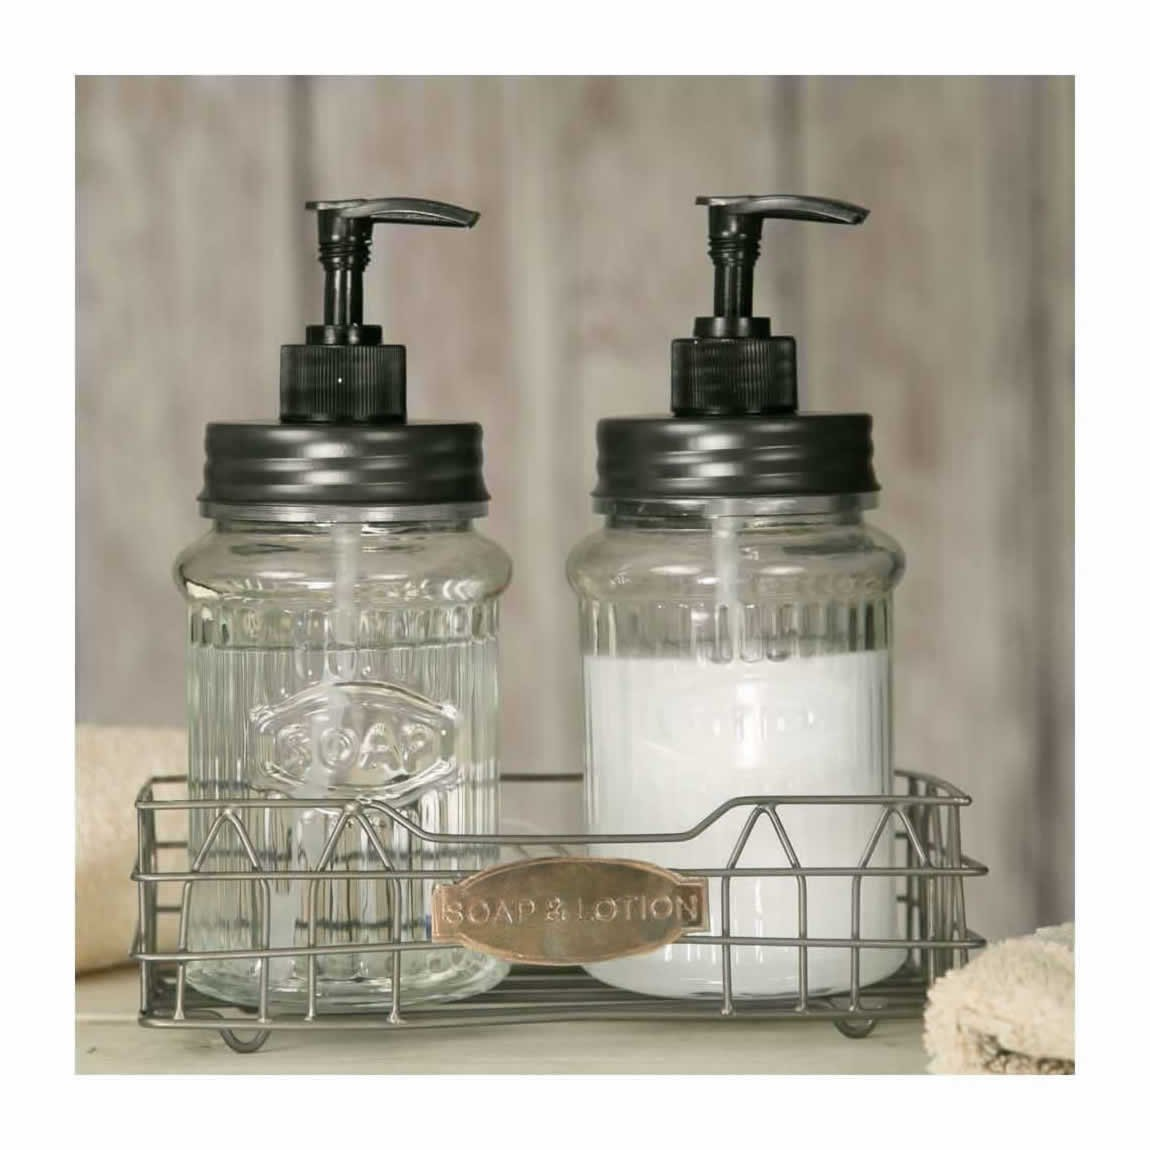 Cheap Soap And Lotion Caddy Find Soap And Lotion Caddy Deals On